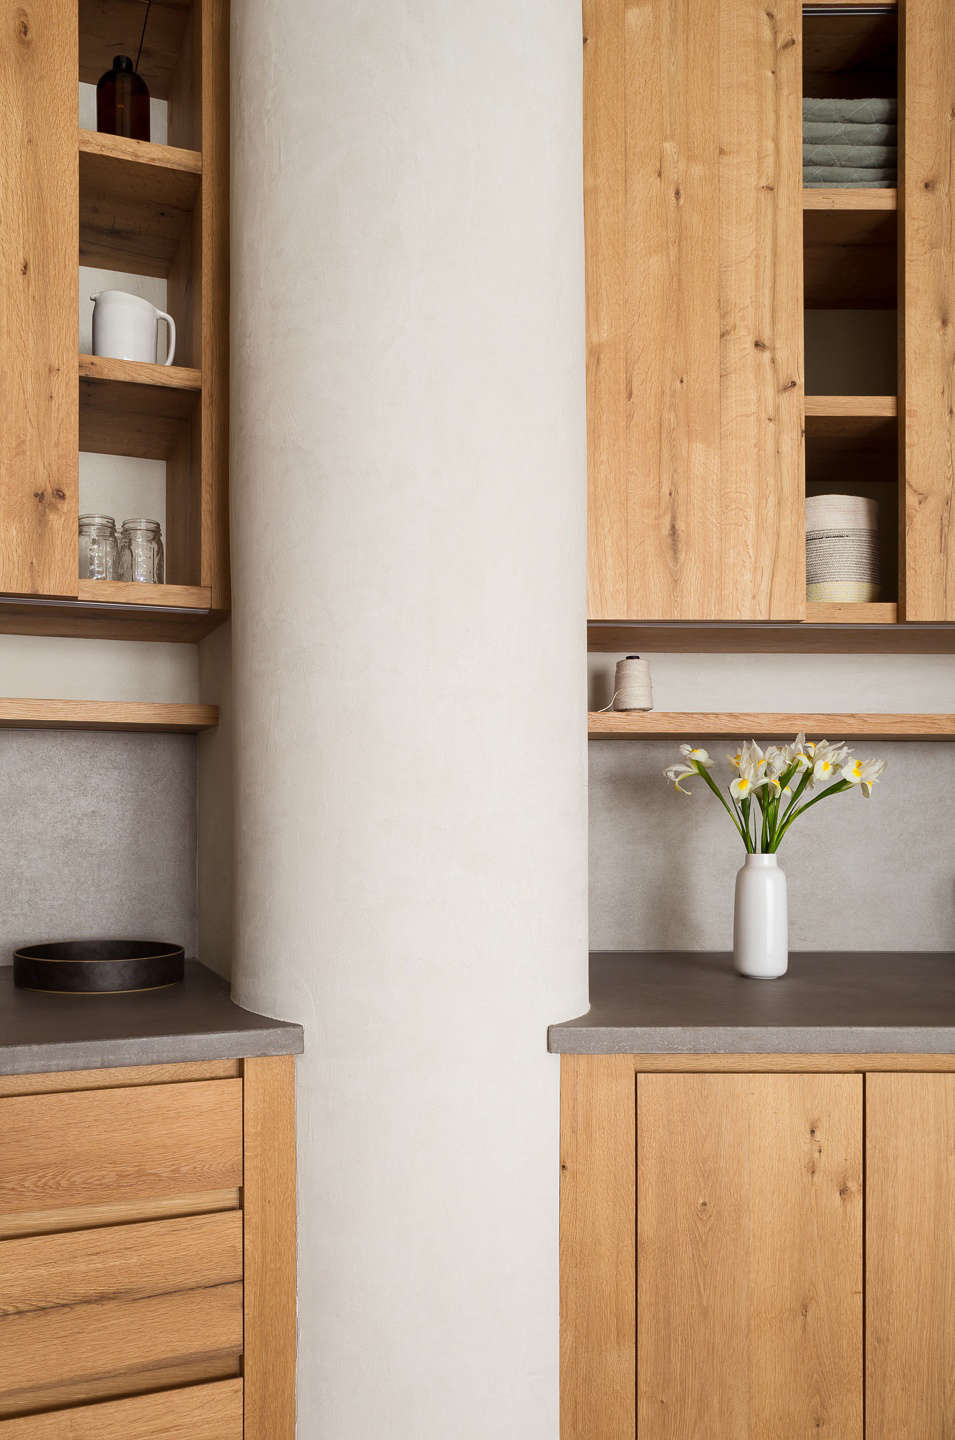 Kitchen of a Gramercy Park apartment remodel with plaster walls and oak cabinets